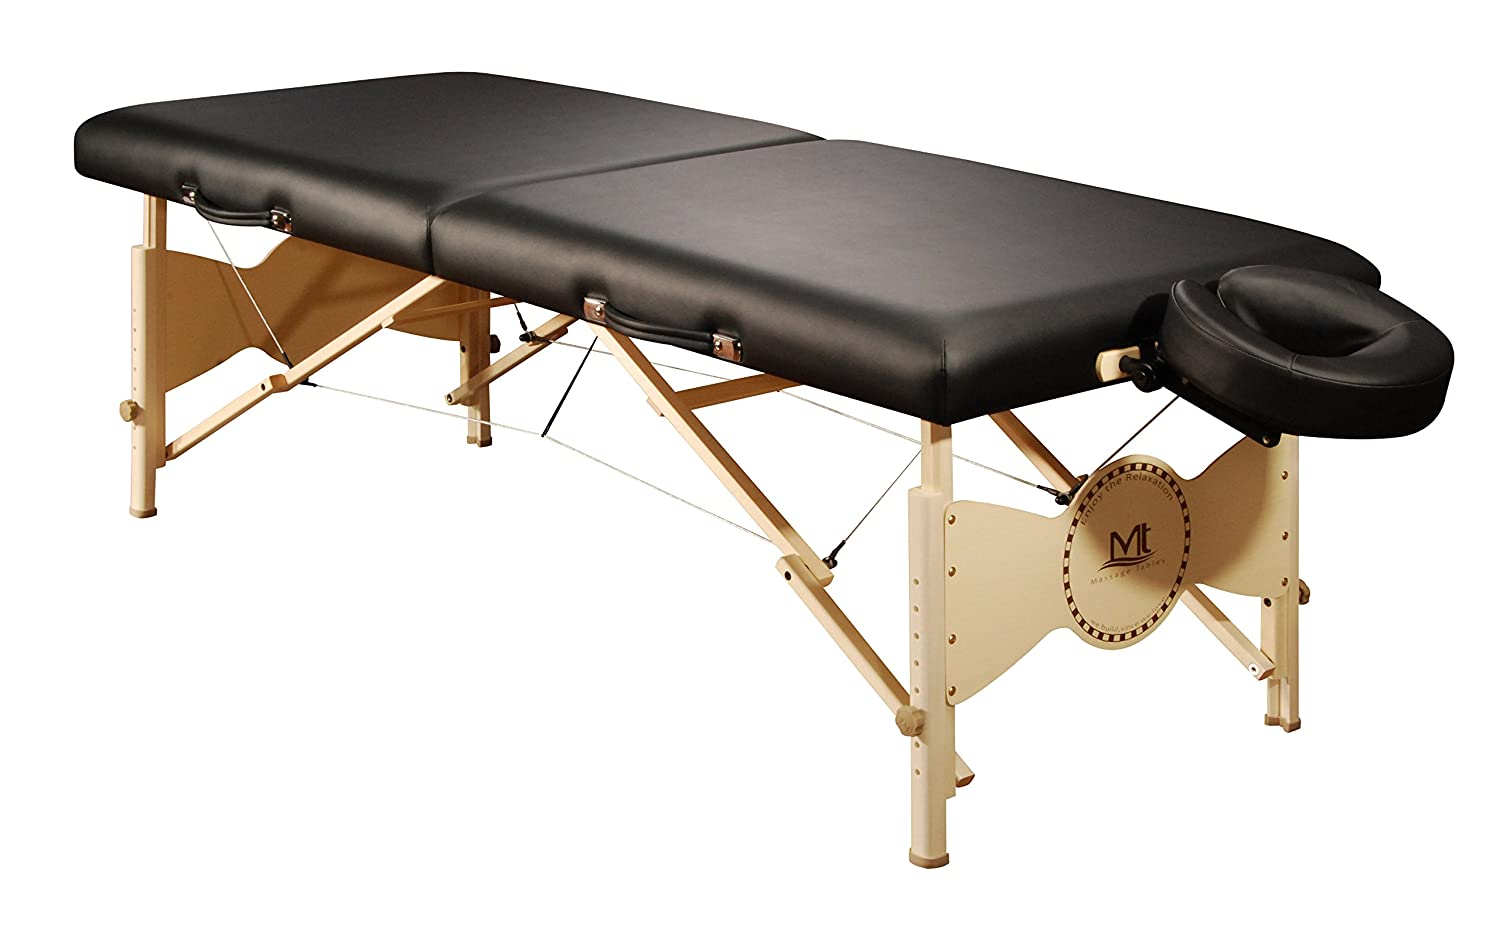 Mt Massage Tables Midas 30 Inch Portable Package, Black, 45 Pound Master Home Products LTD. (DROPSHIP)